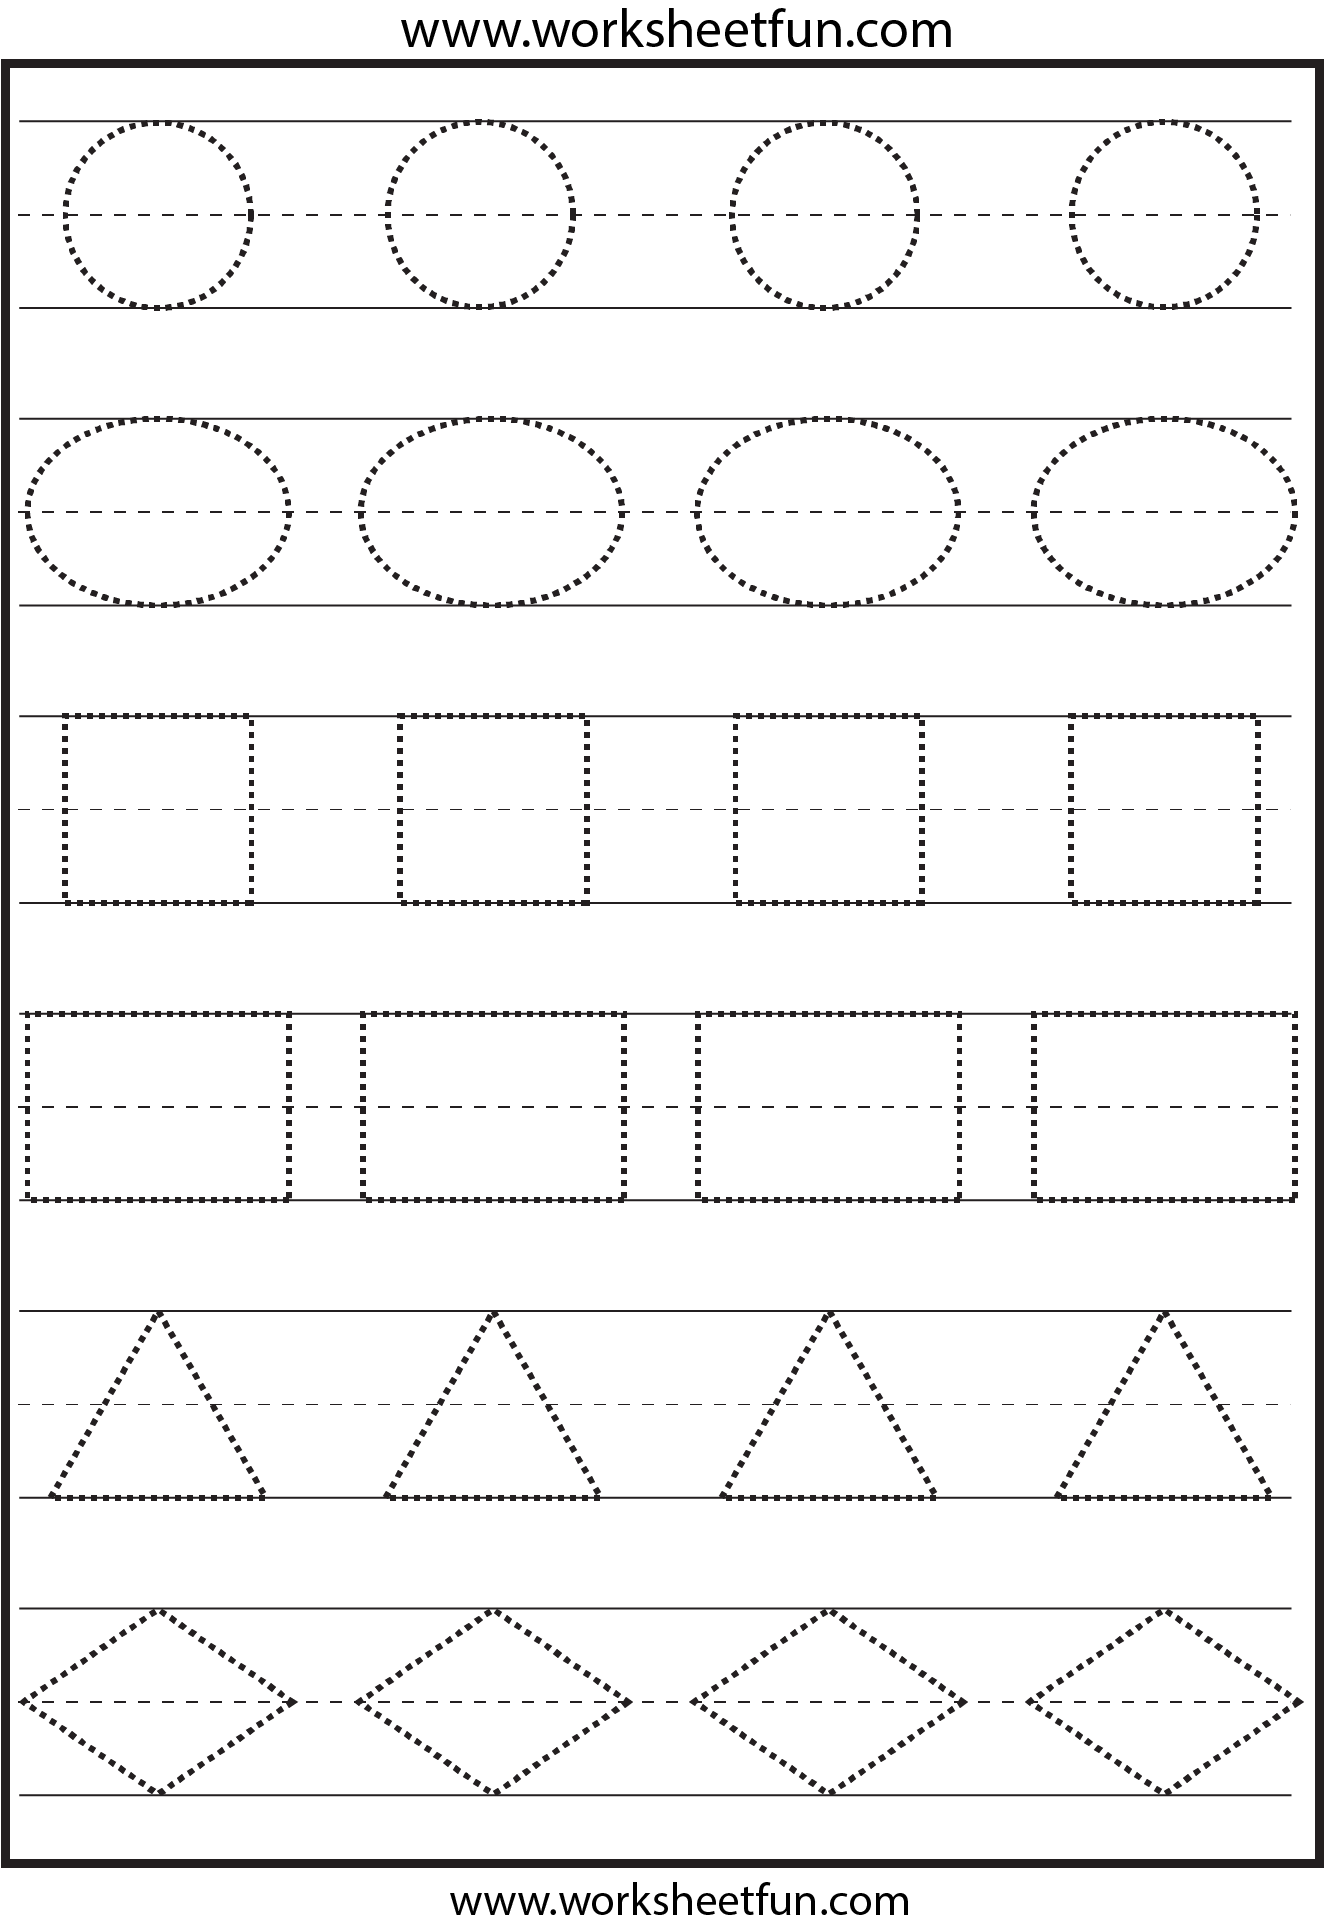 Worksheets Free Printable Name Tracing Worksheets tracing shapes this is not the right image ones on page were name worksheetscoloring